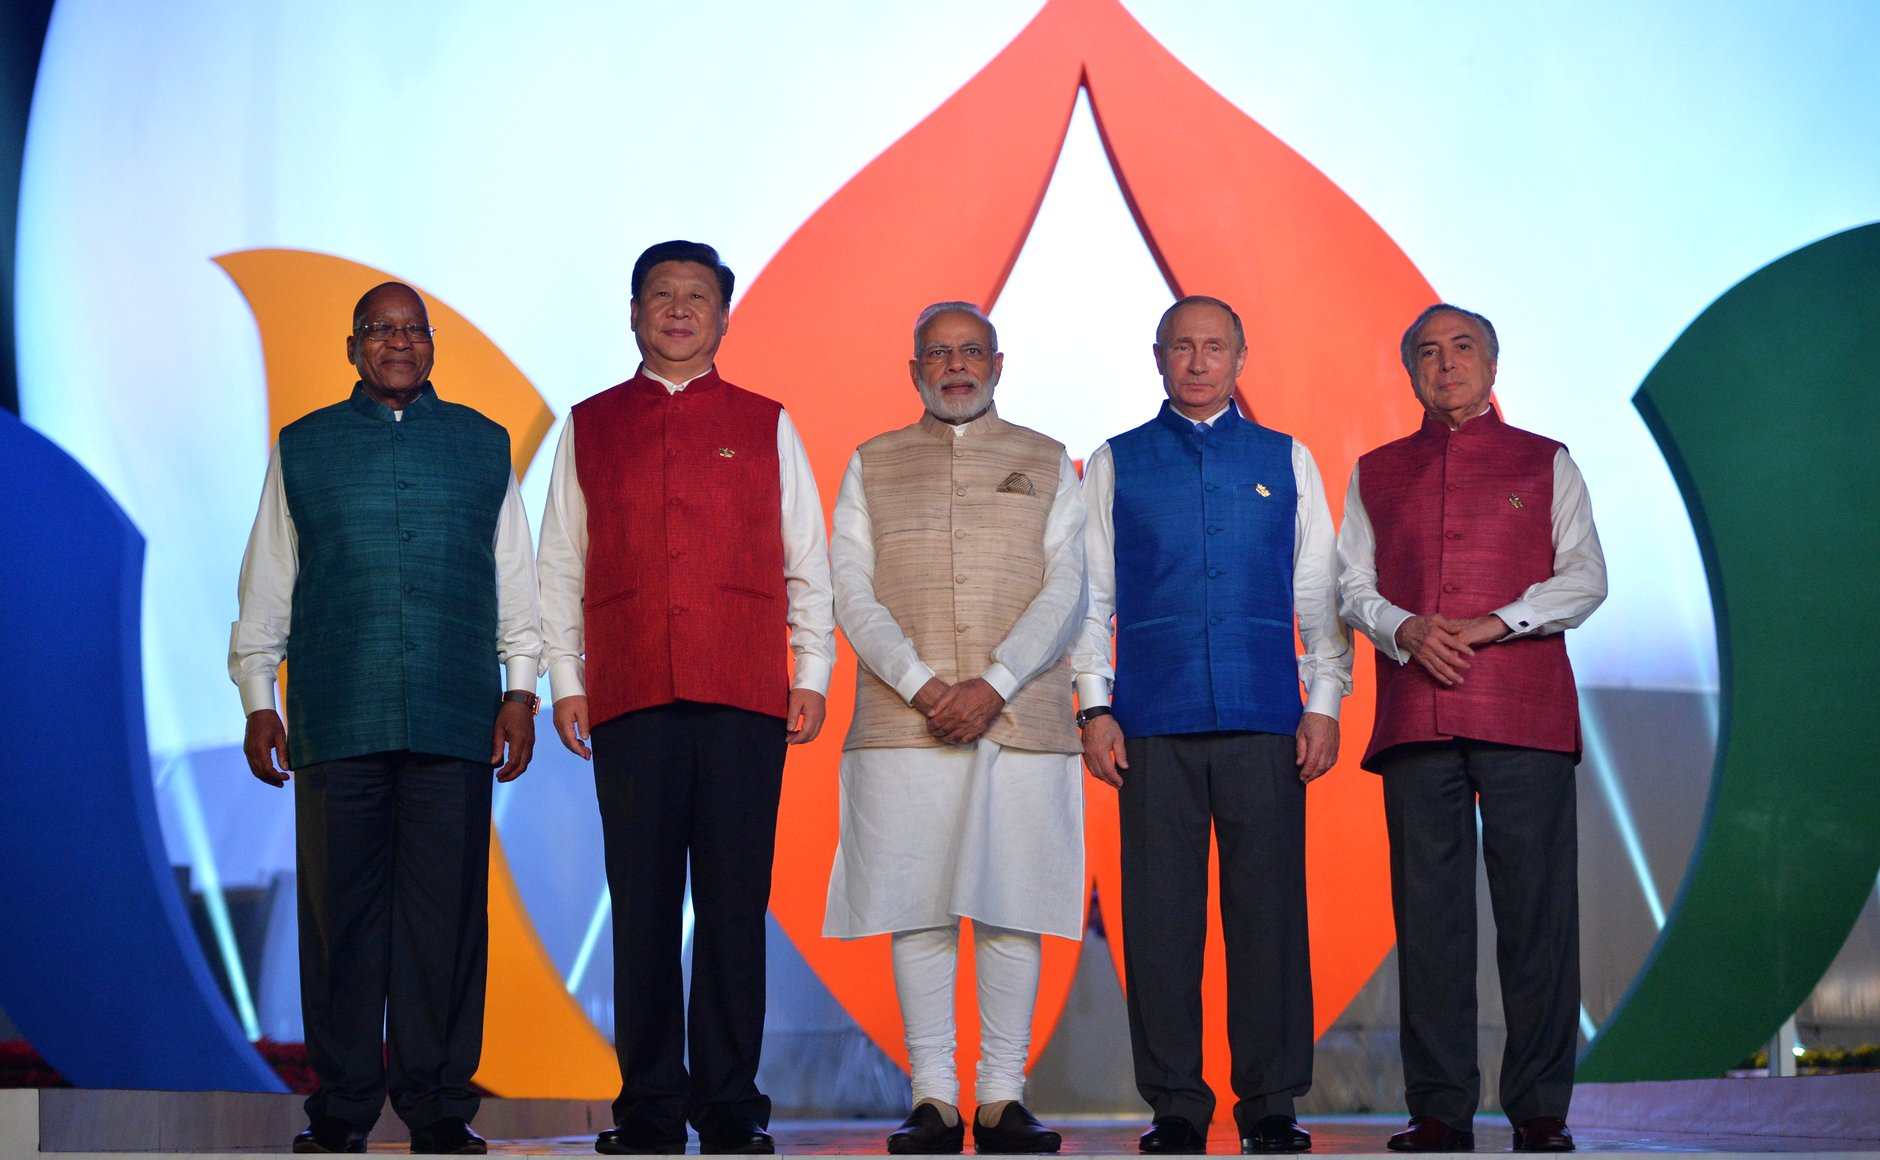 BRICS is intended to change the global situation by peaceful means.